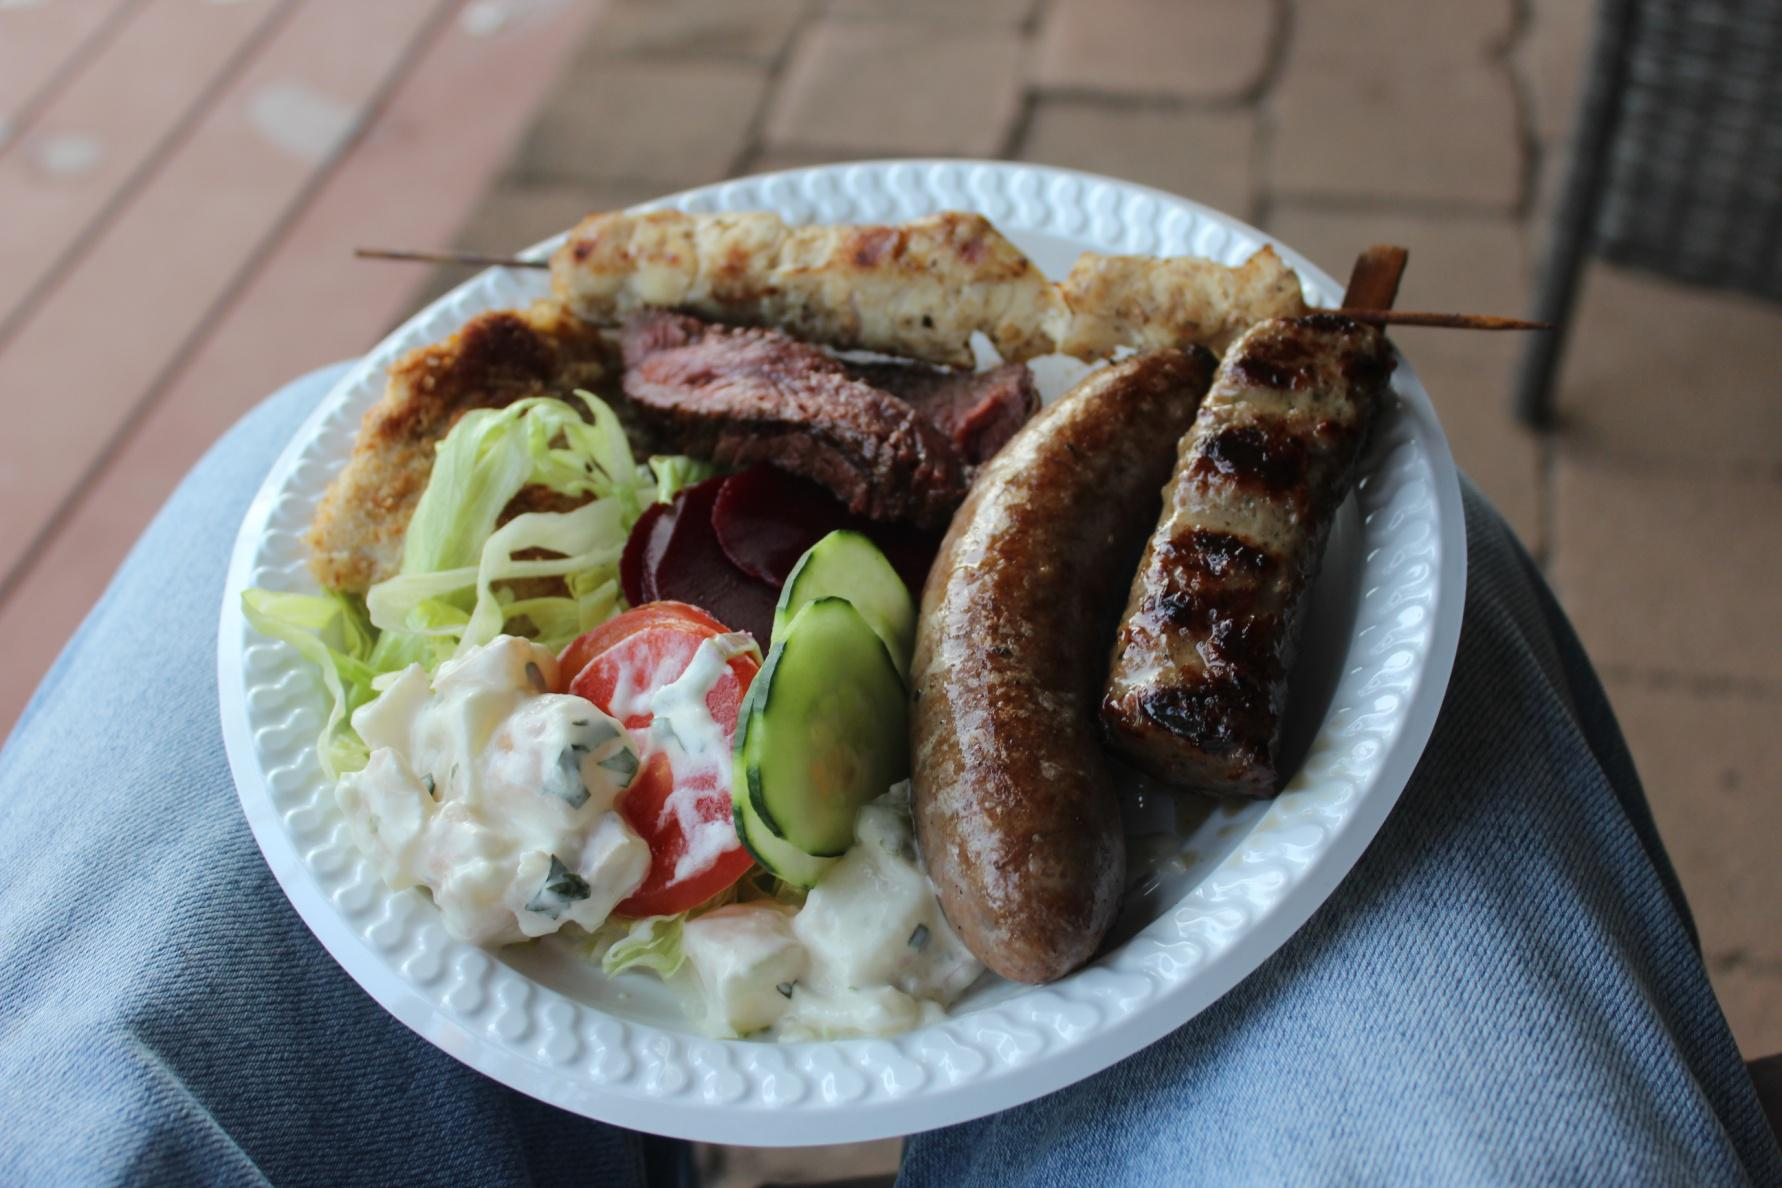 At this this barbecue there is crocodile meat, kangaroo meat, emu meat, camel sausage, goat meat and some vegetables.